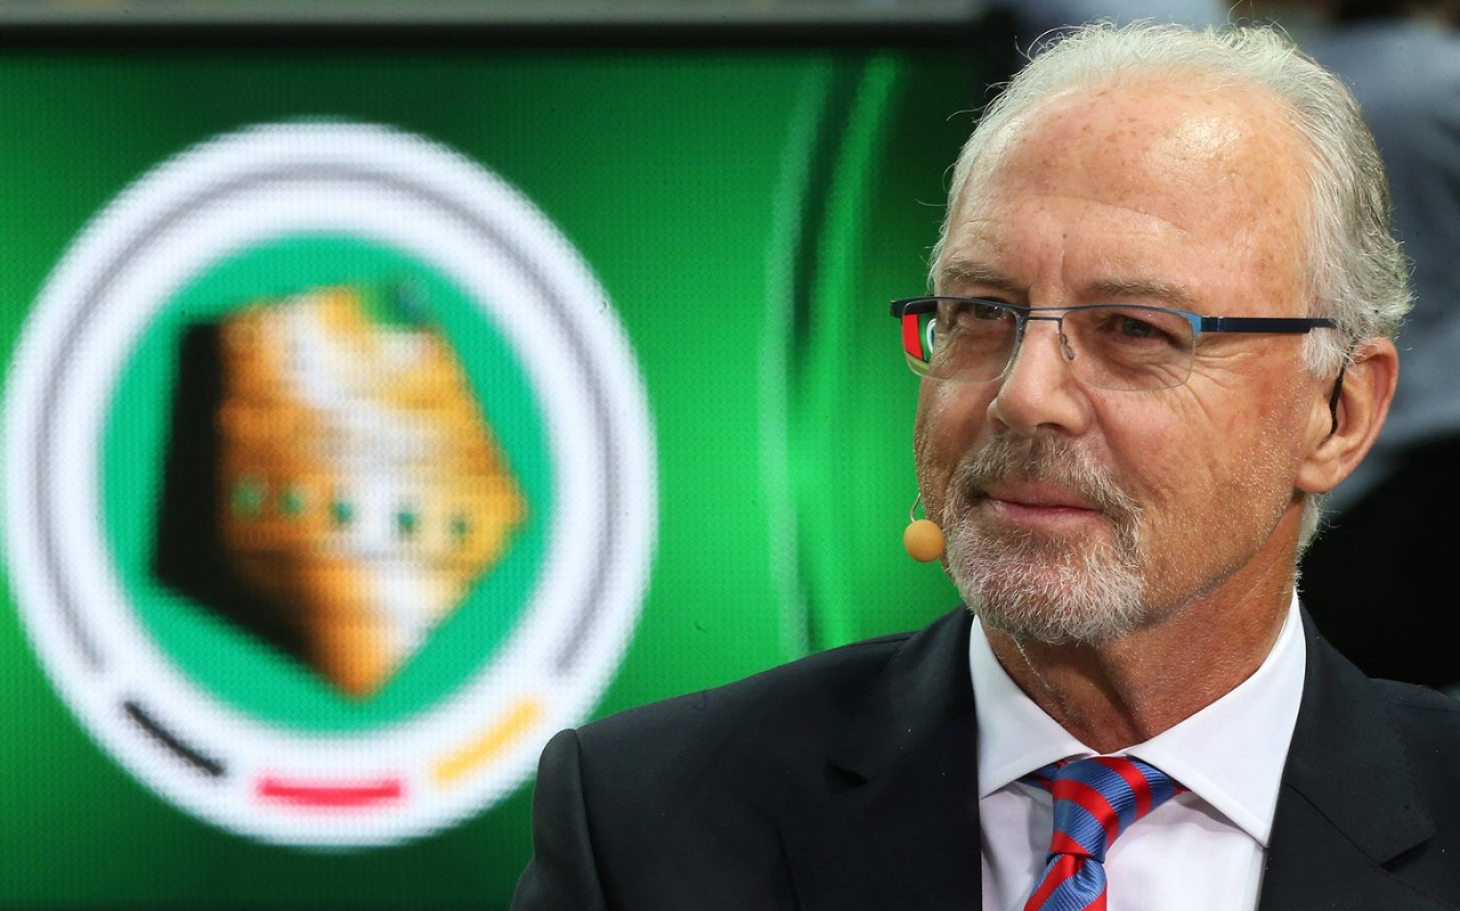 Franz Beckenbauer banned by FIFA for 90 days over bribery